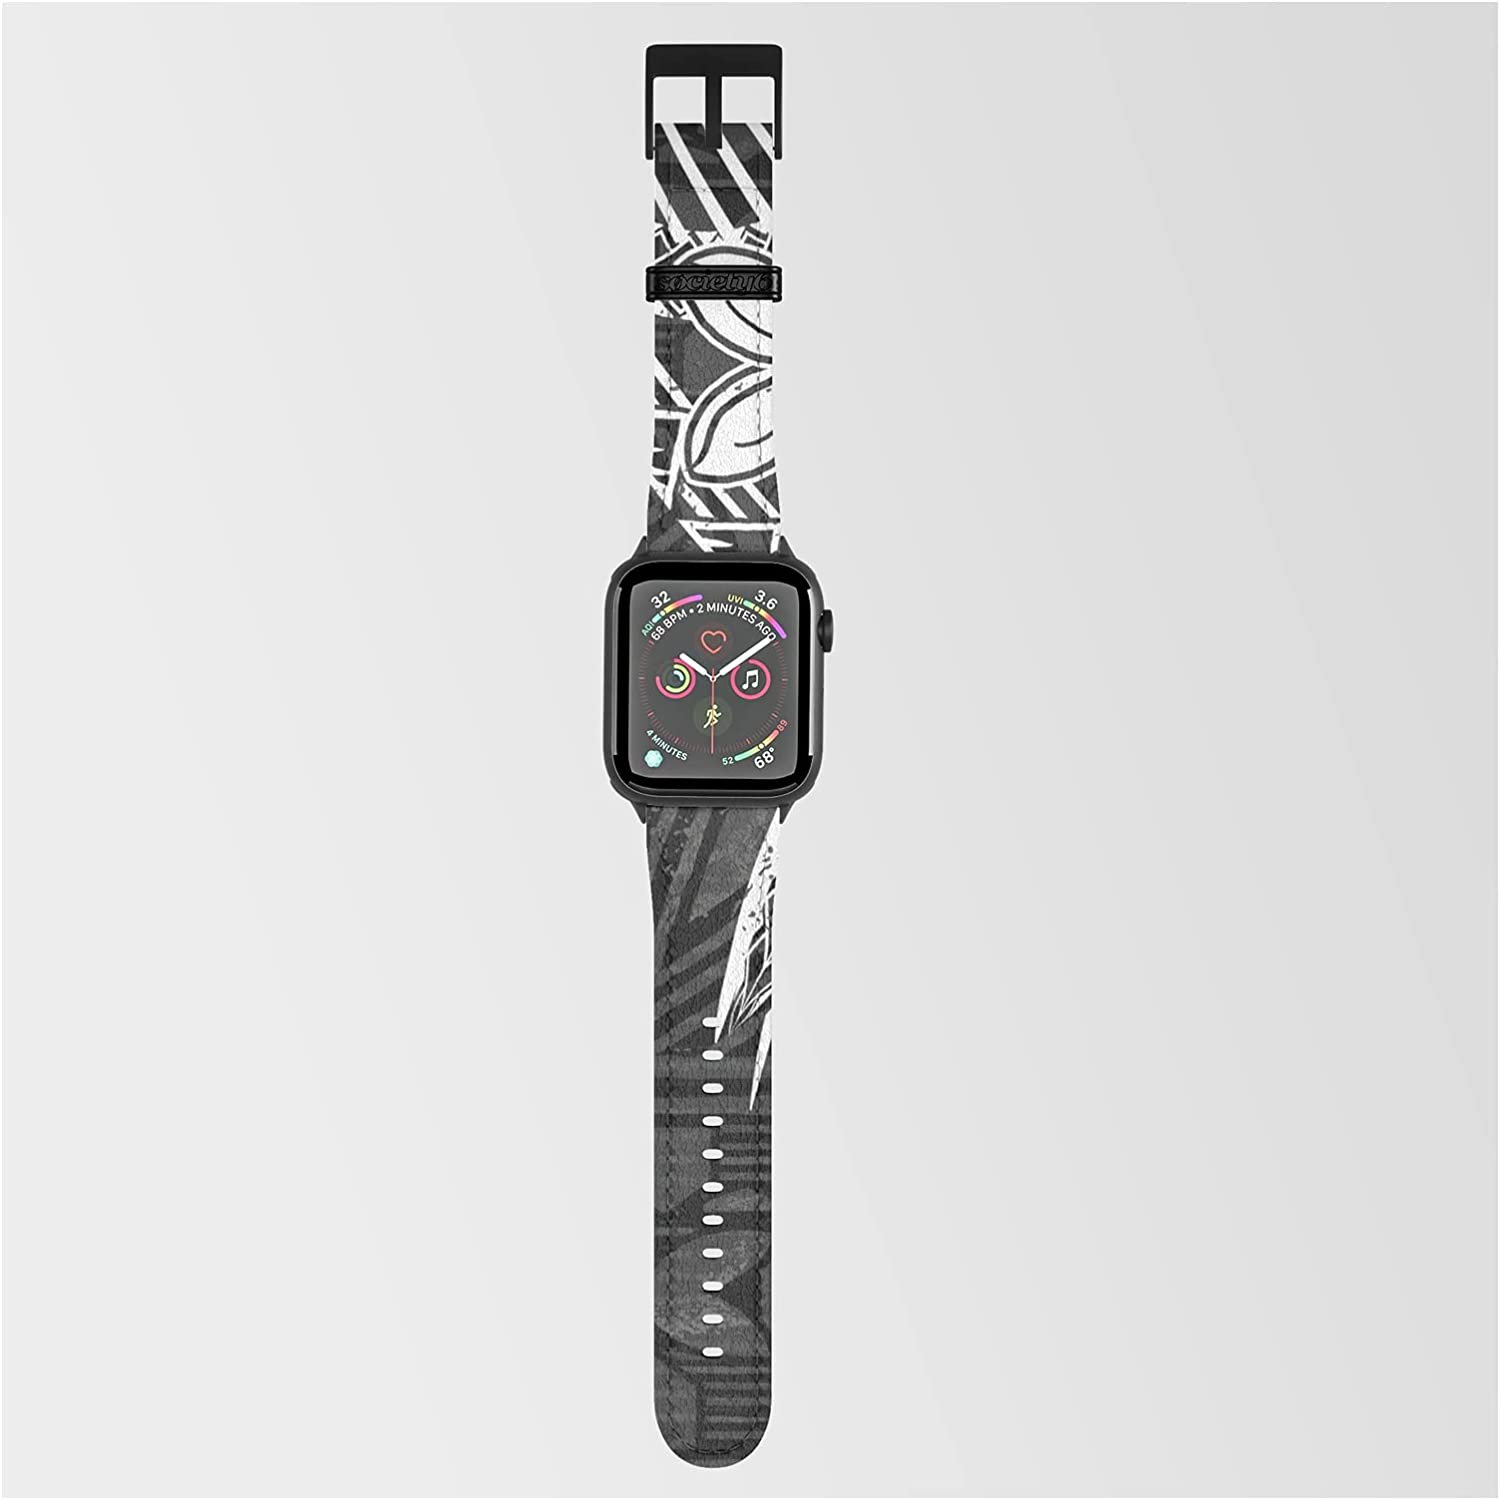 Vintage Samoan Tapa Print by Sun N Threads on Excellence Gorgeous Band Co Smartwatch